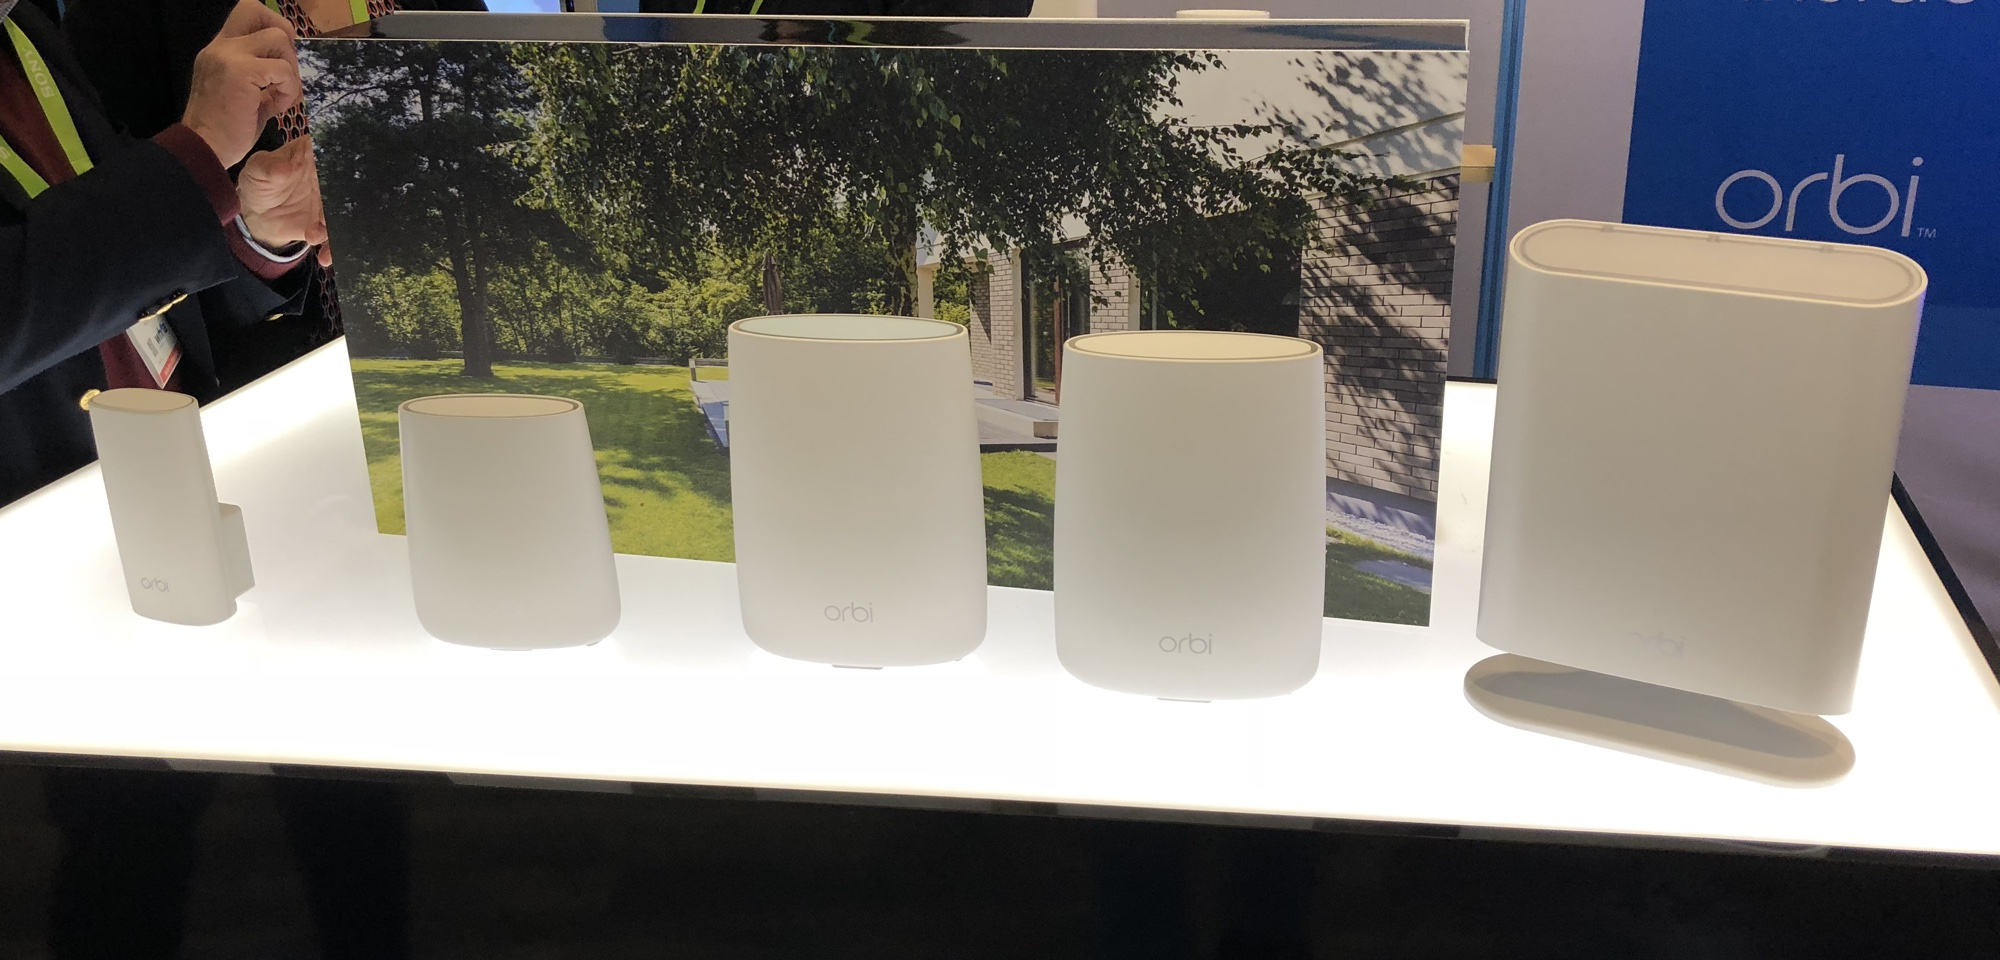 CES – Netgear adds Waterproof Orbi Outdoor Satellite RBS50Y